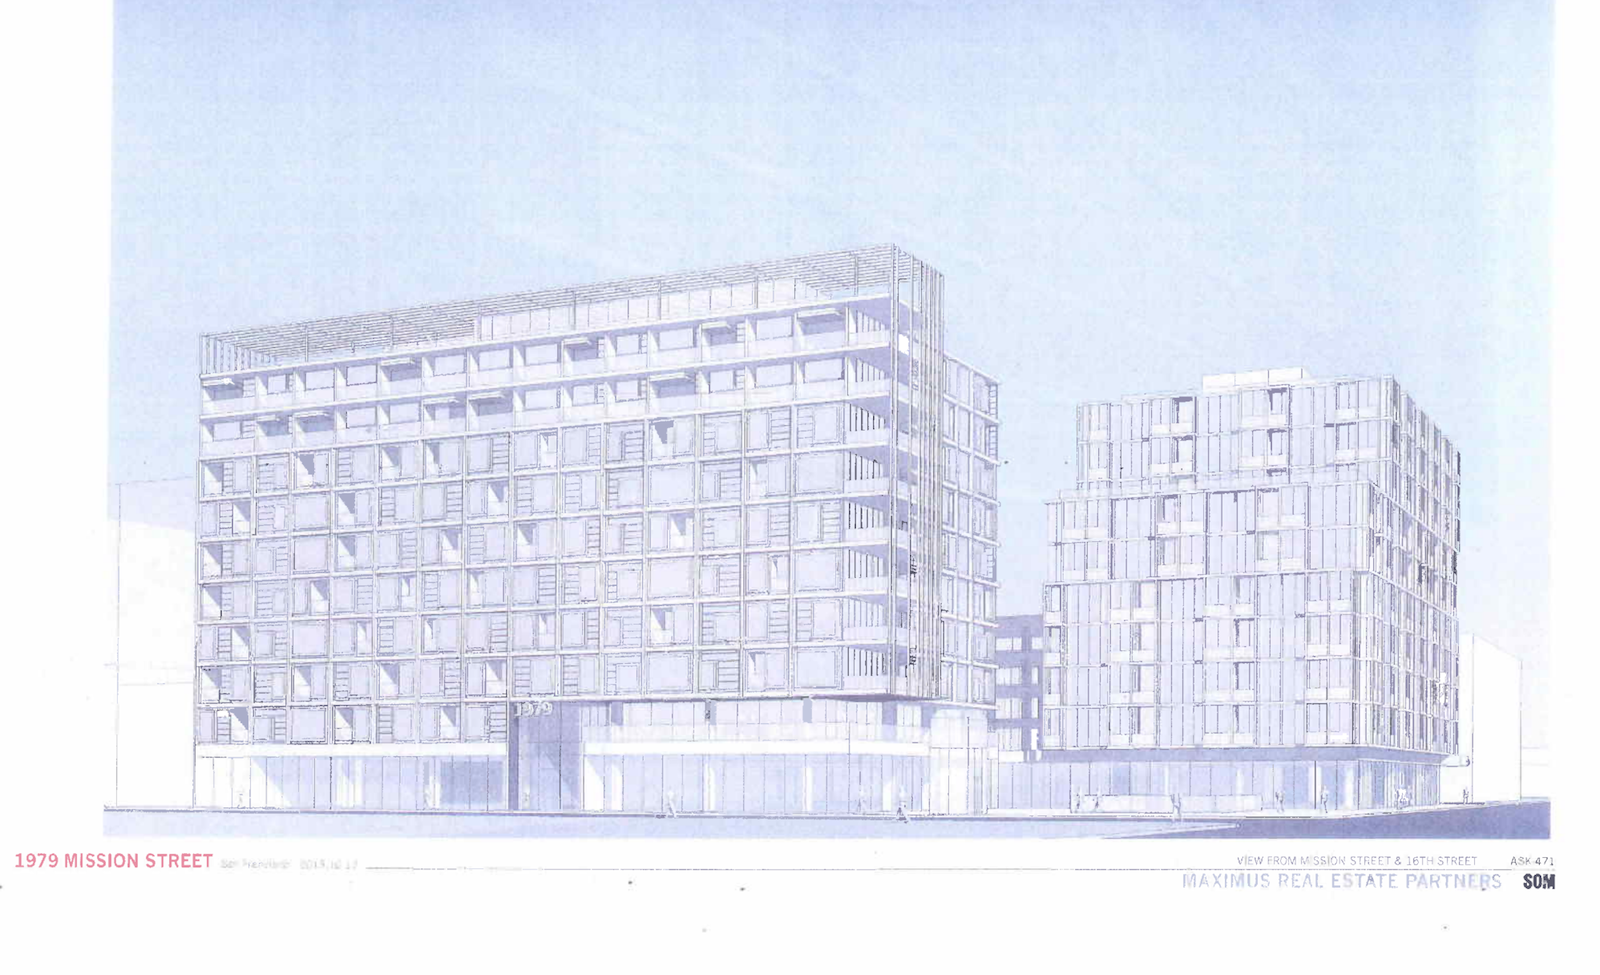 High Rise Condos Proposed for 16th and Mission